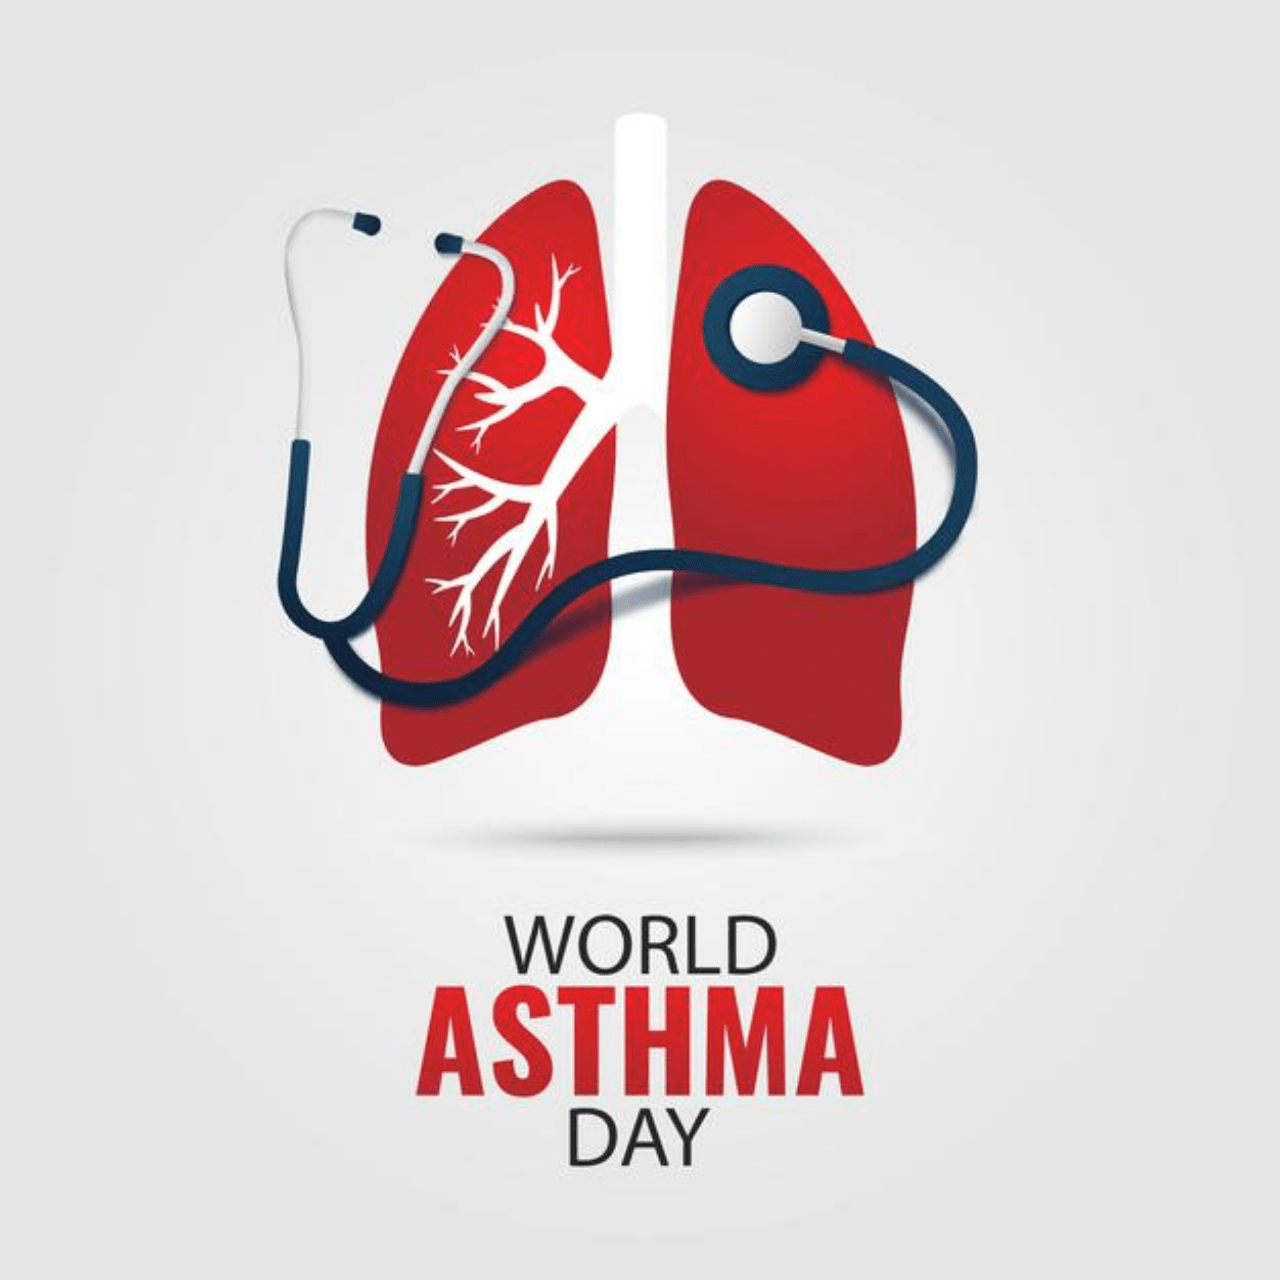 World Asthma Day 2021 Theme, Quotes, Drawing, Images, and Poster to Spread Awareness